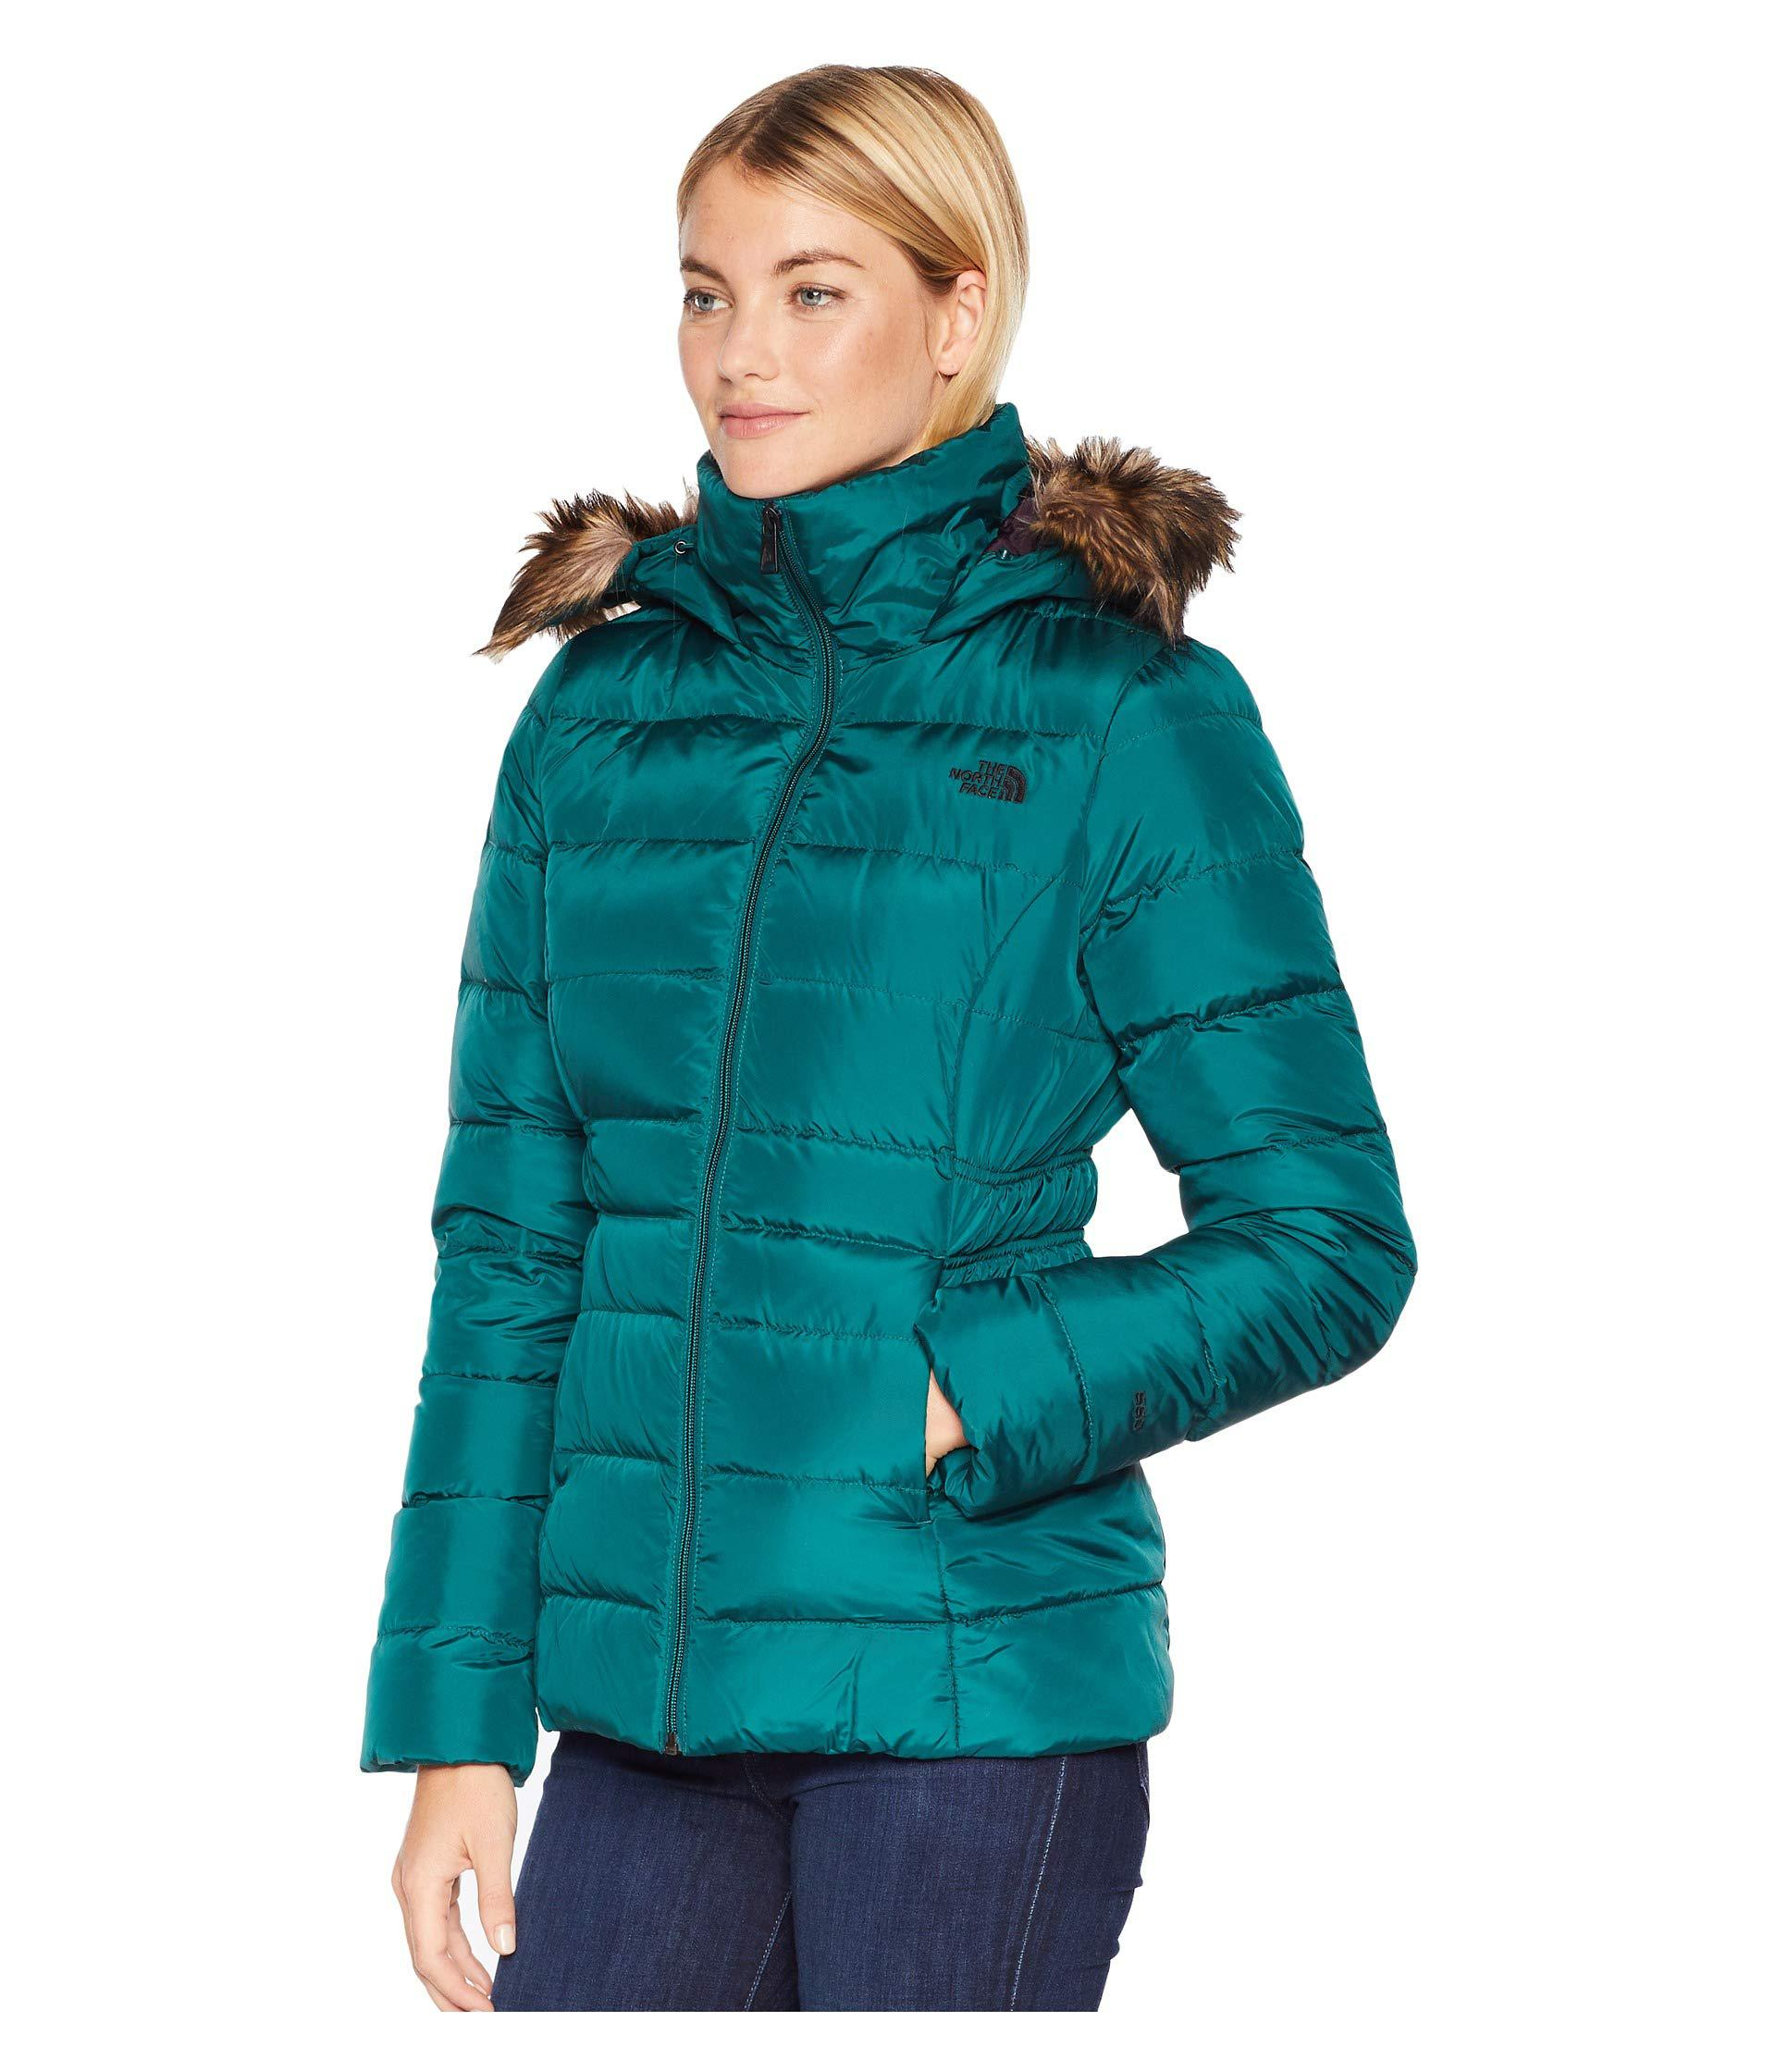 8d4d93fa78b0a Lyst - The North Face Gotham Jacket Ii (botanical Garden Green) Women s Coat  in Green